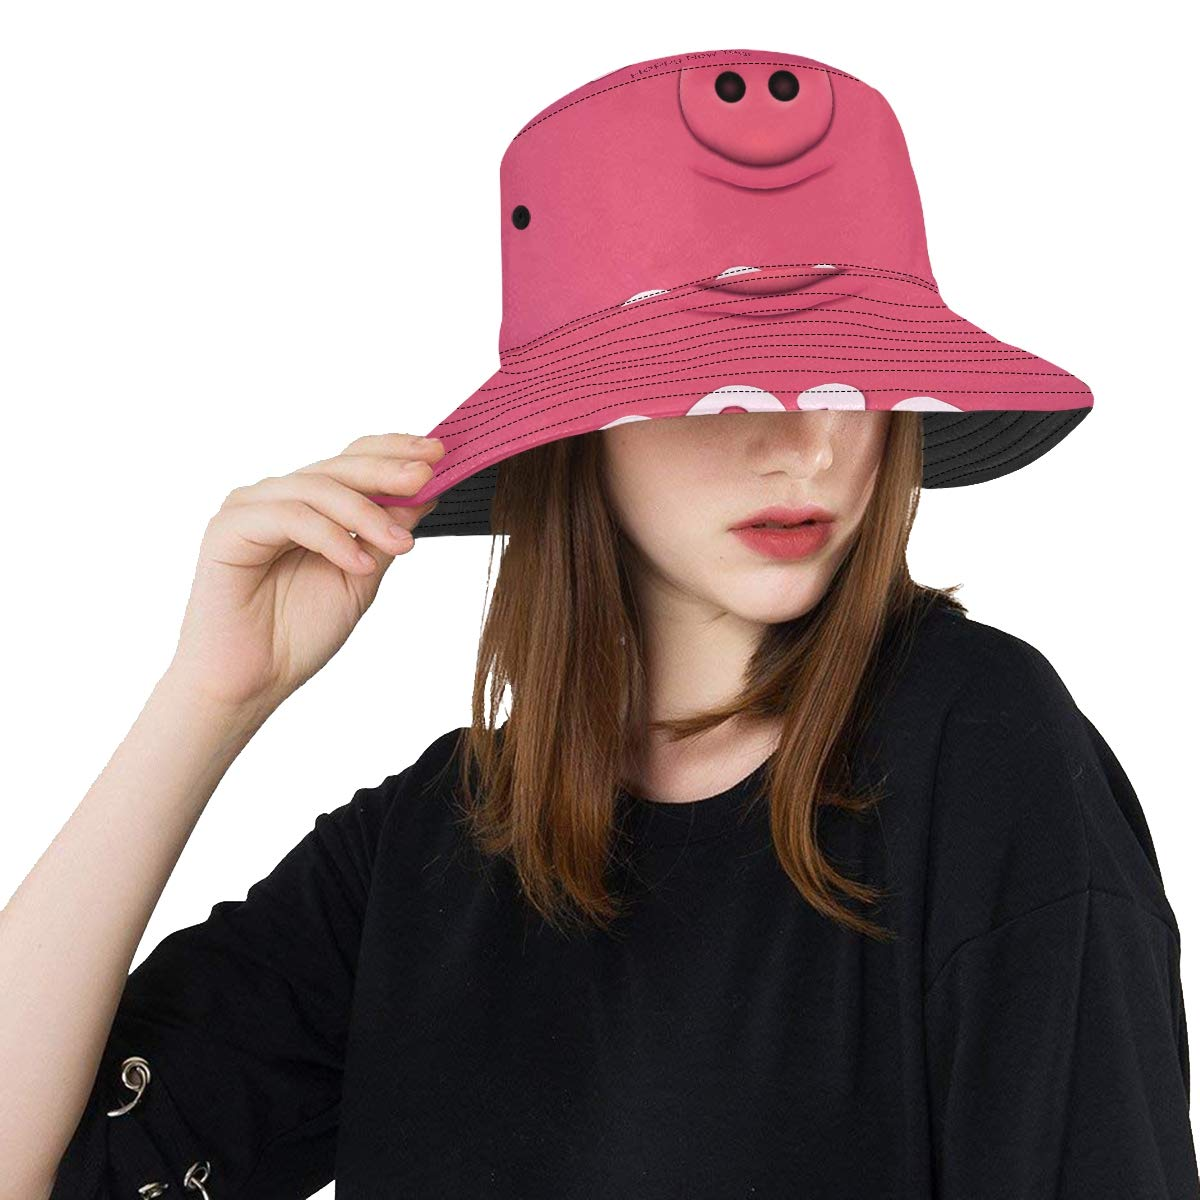 08f29041ad6 ... Pig New Summer Unisex Cotton Fashion Fishing Sun Bucket Hats for Kid  Teens Women and Men with Customize Top Packable Fisherman Cap for Outdoor  Travel